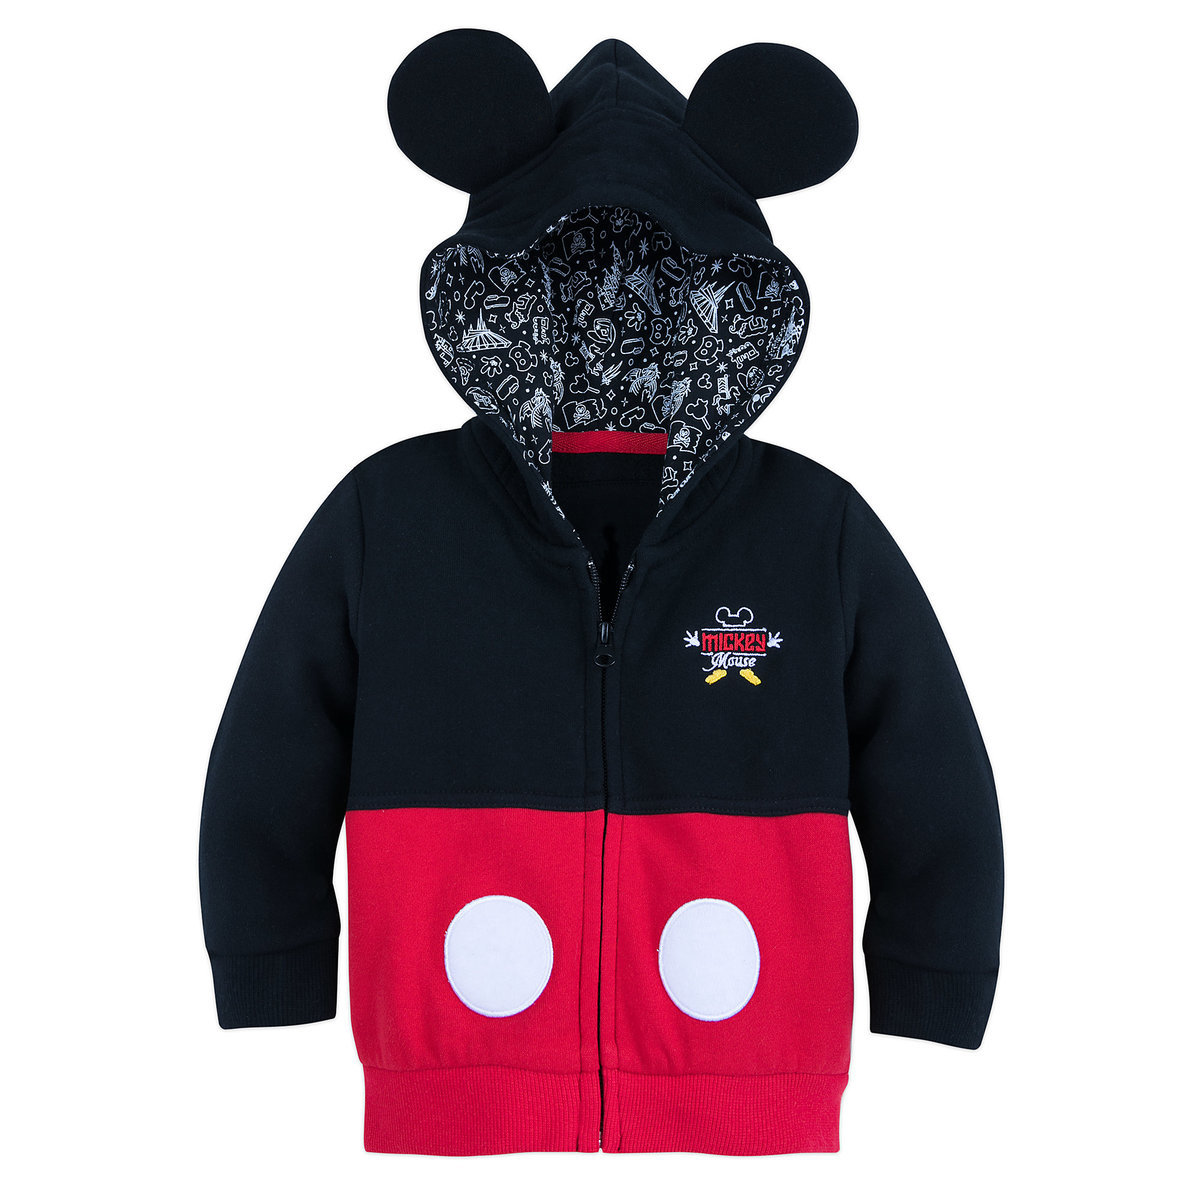 40f952a6d Product Image of I Am Mickey Mouse Zip-Up Hoodie for Baby # 1